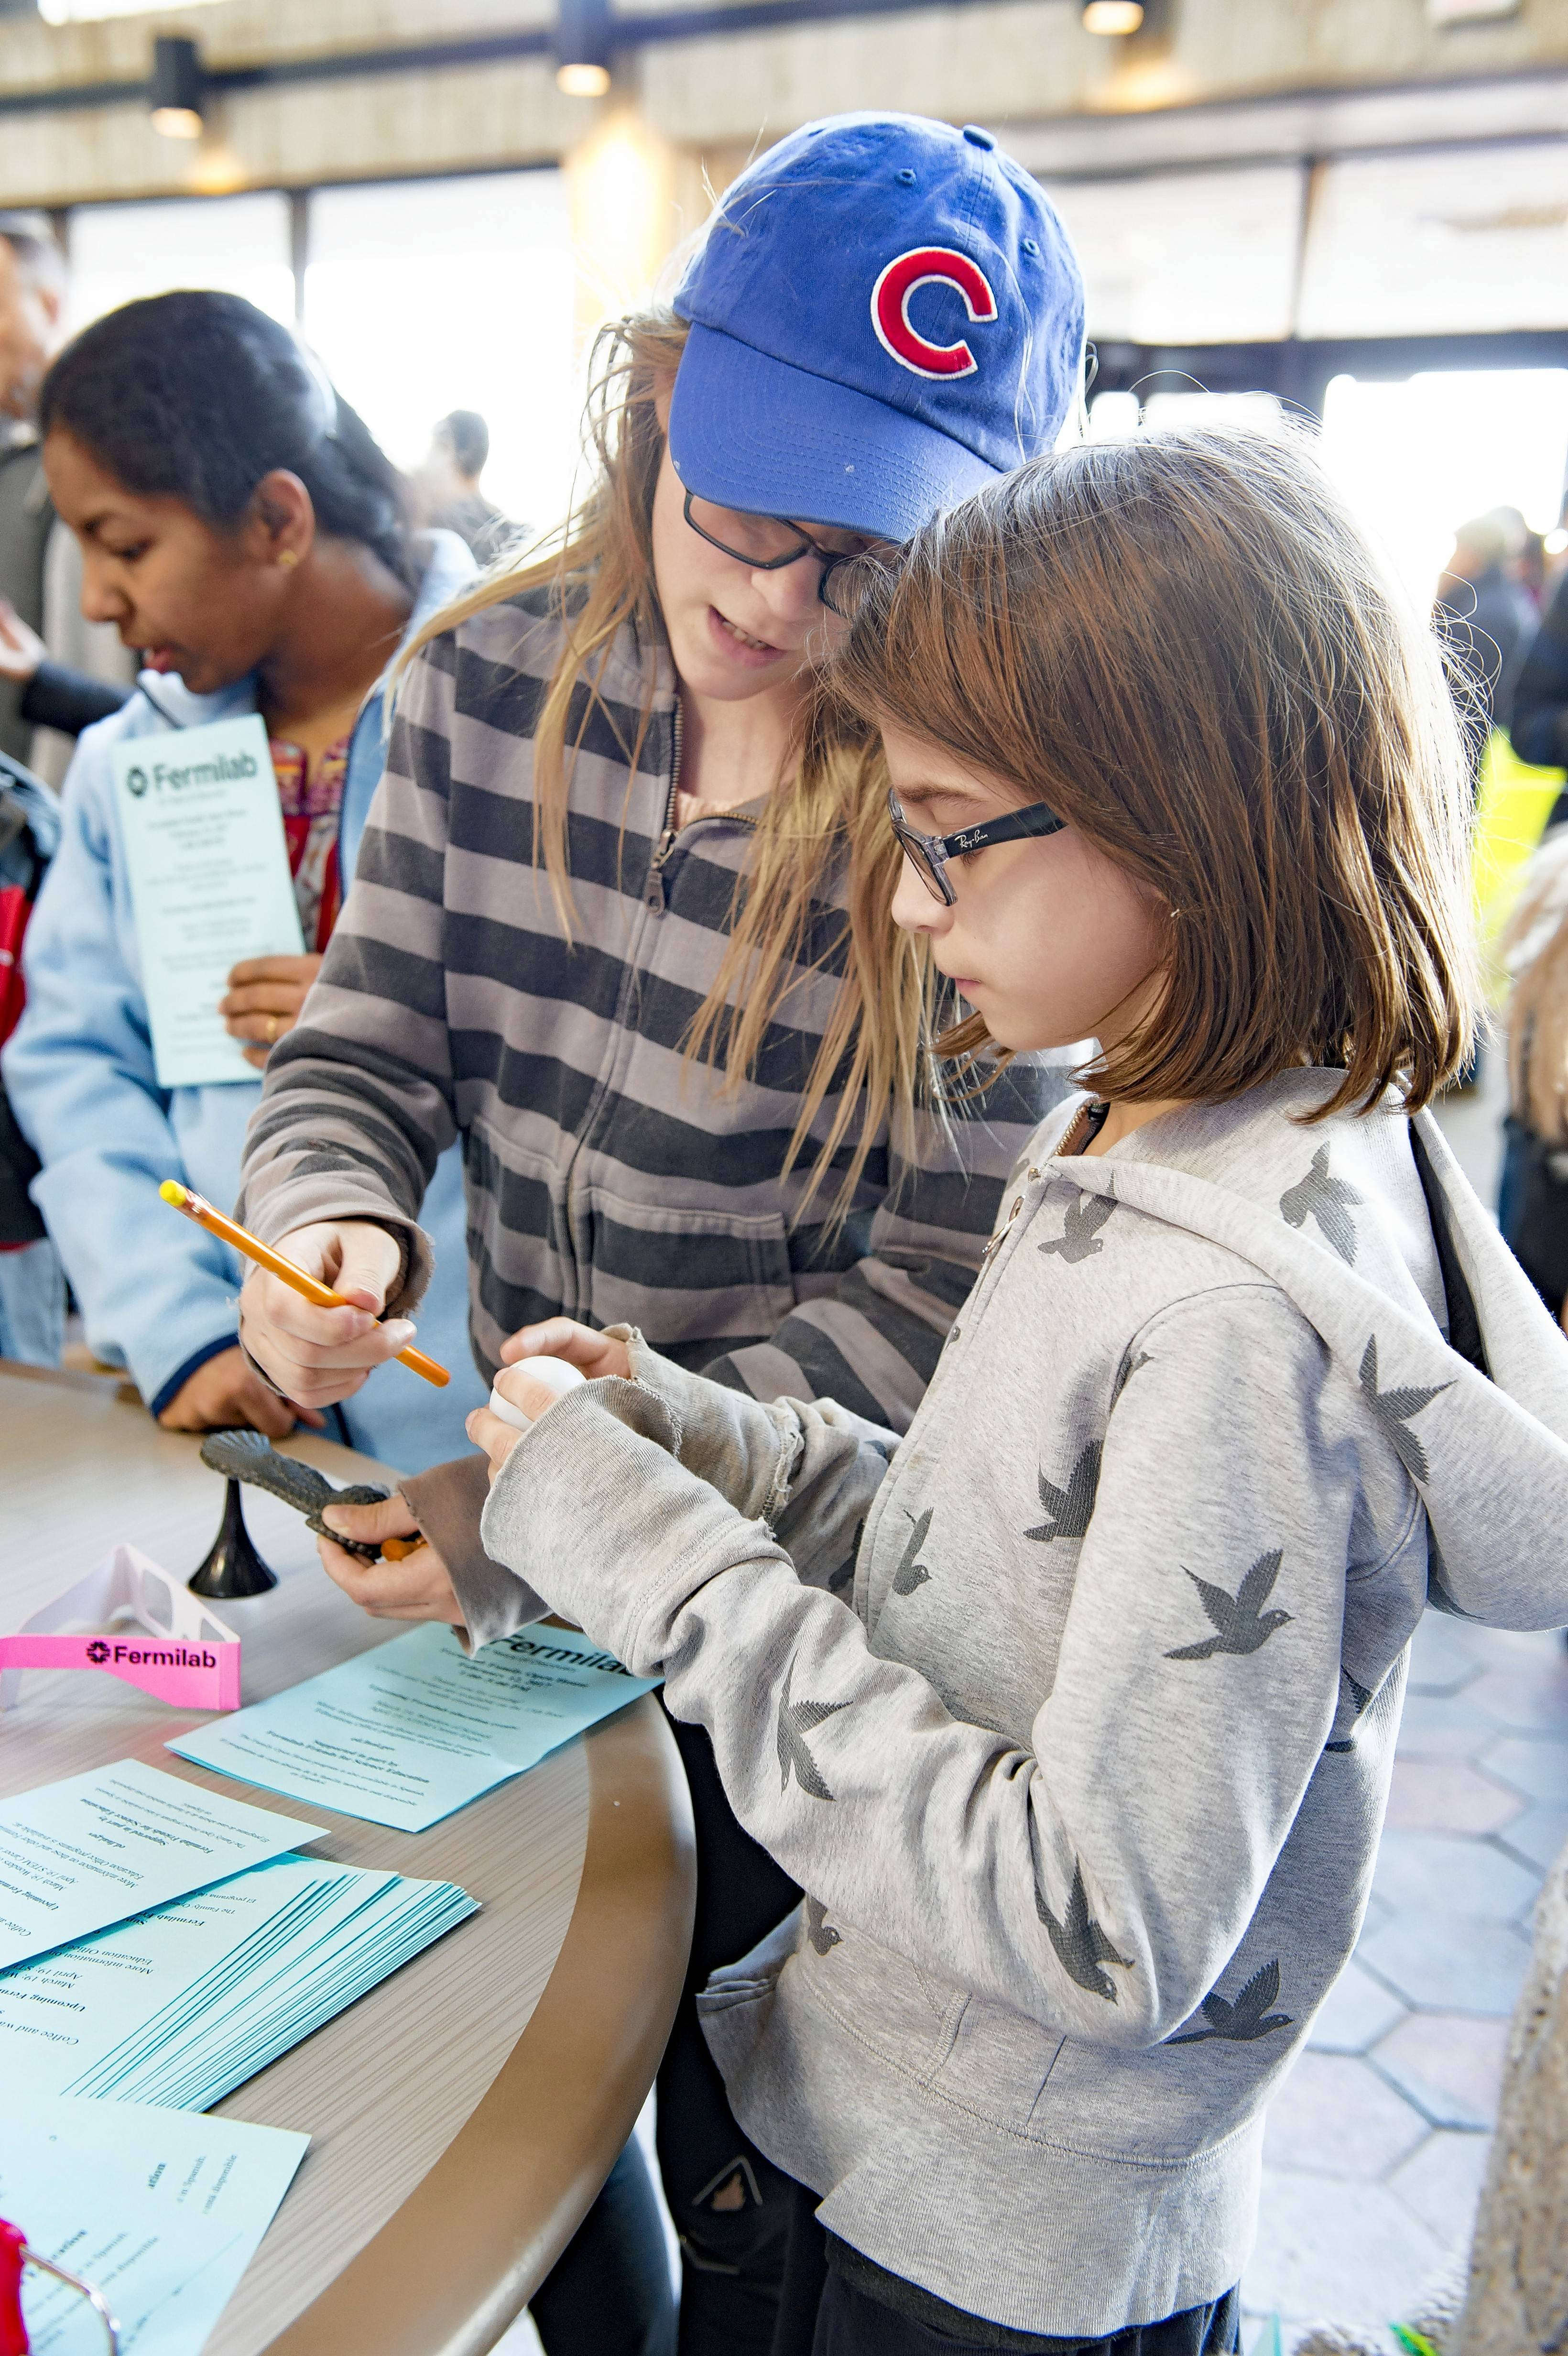 At Fermilab's Family Open House on Sunday, Feb. 10, families can work together to find the center of mass of various objects.